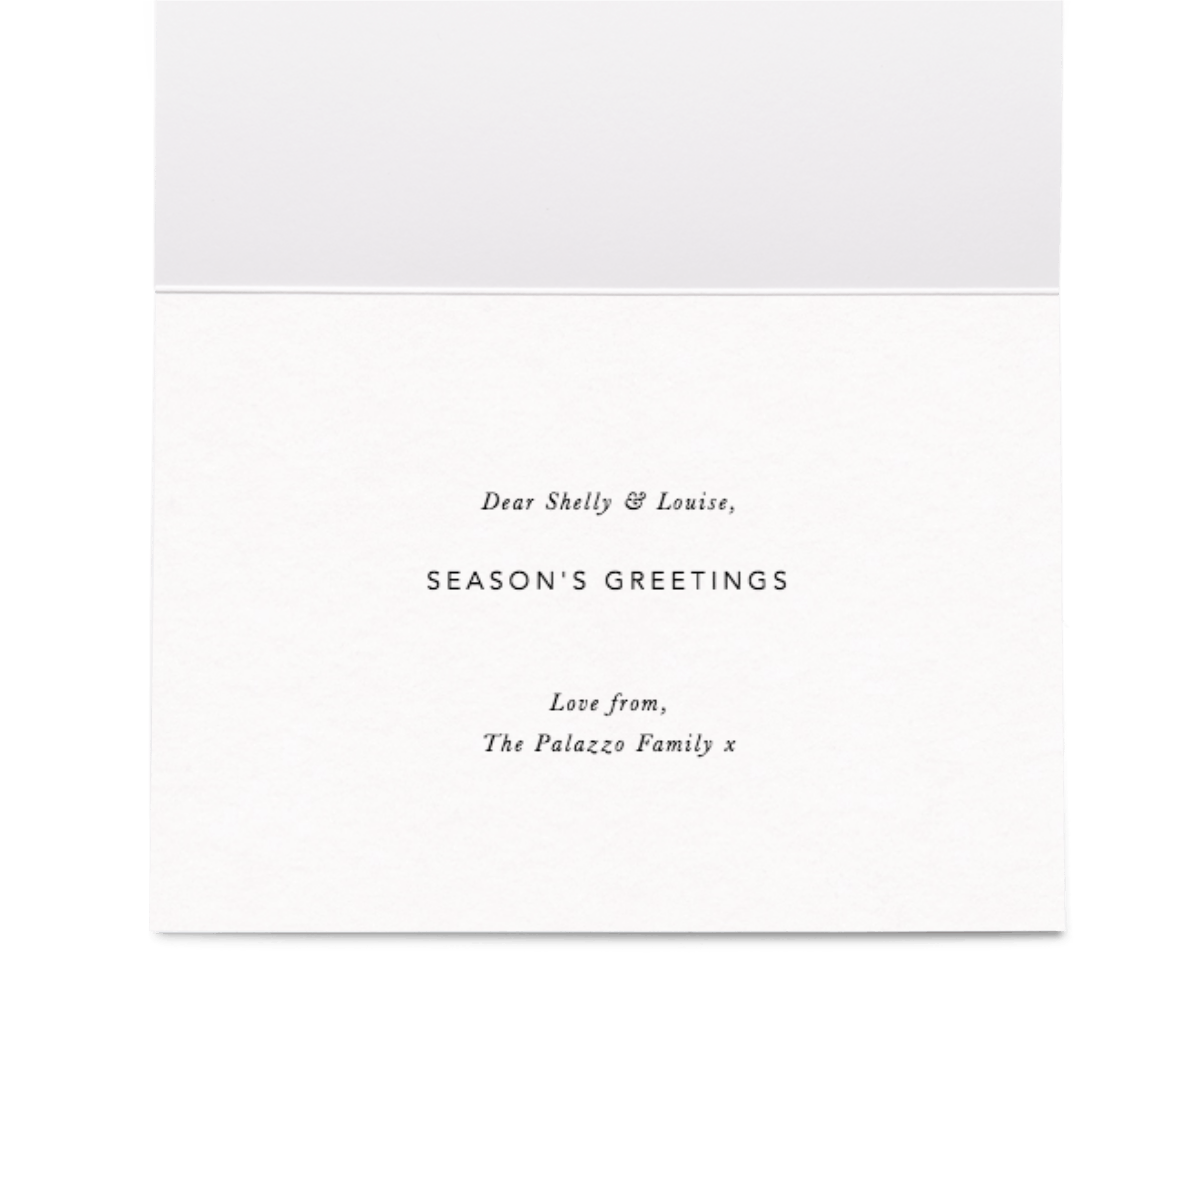 Https%3a%2f%2fwww.papier.com%2fproduct image%2f30906%2f20%2fseason s greetings starry green 6743 interieur 1509968014.png?ixlib=rb 1.1